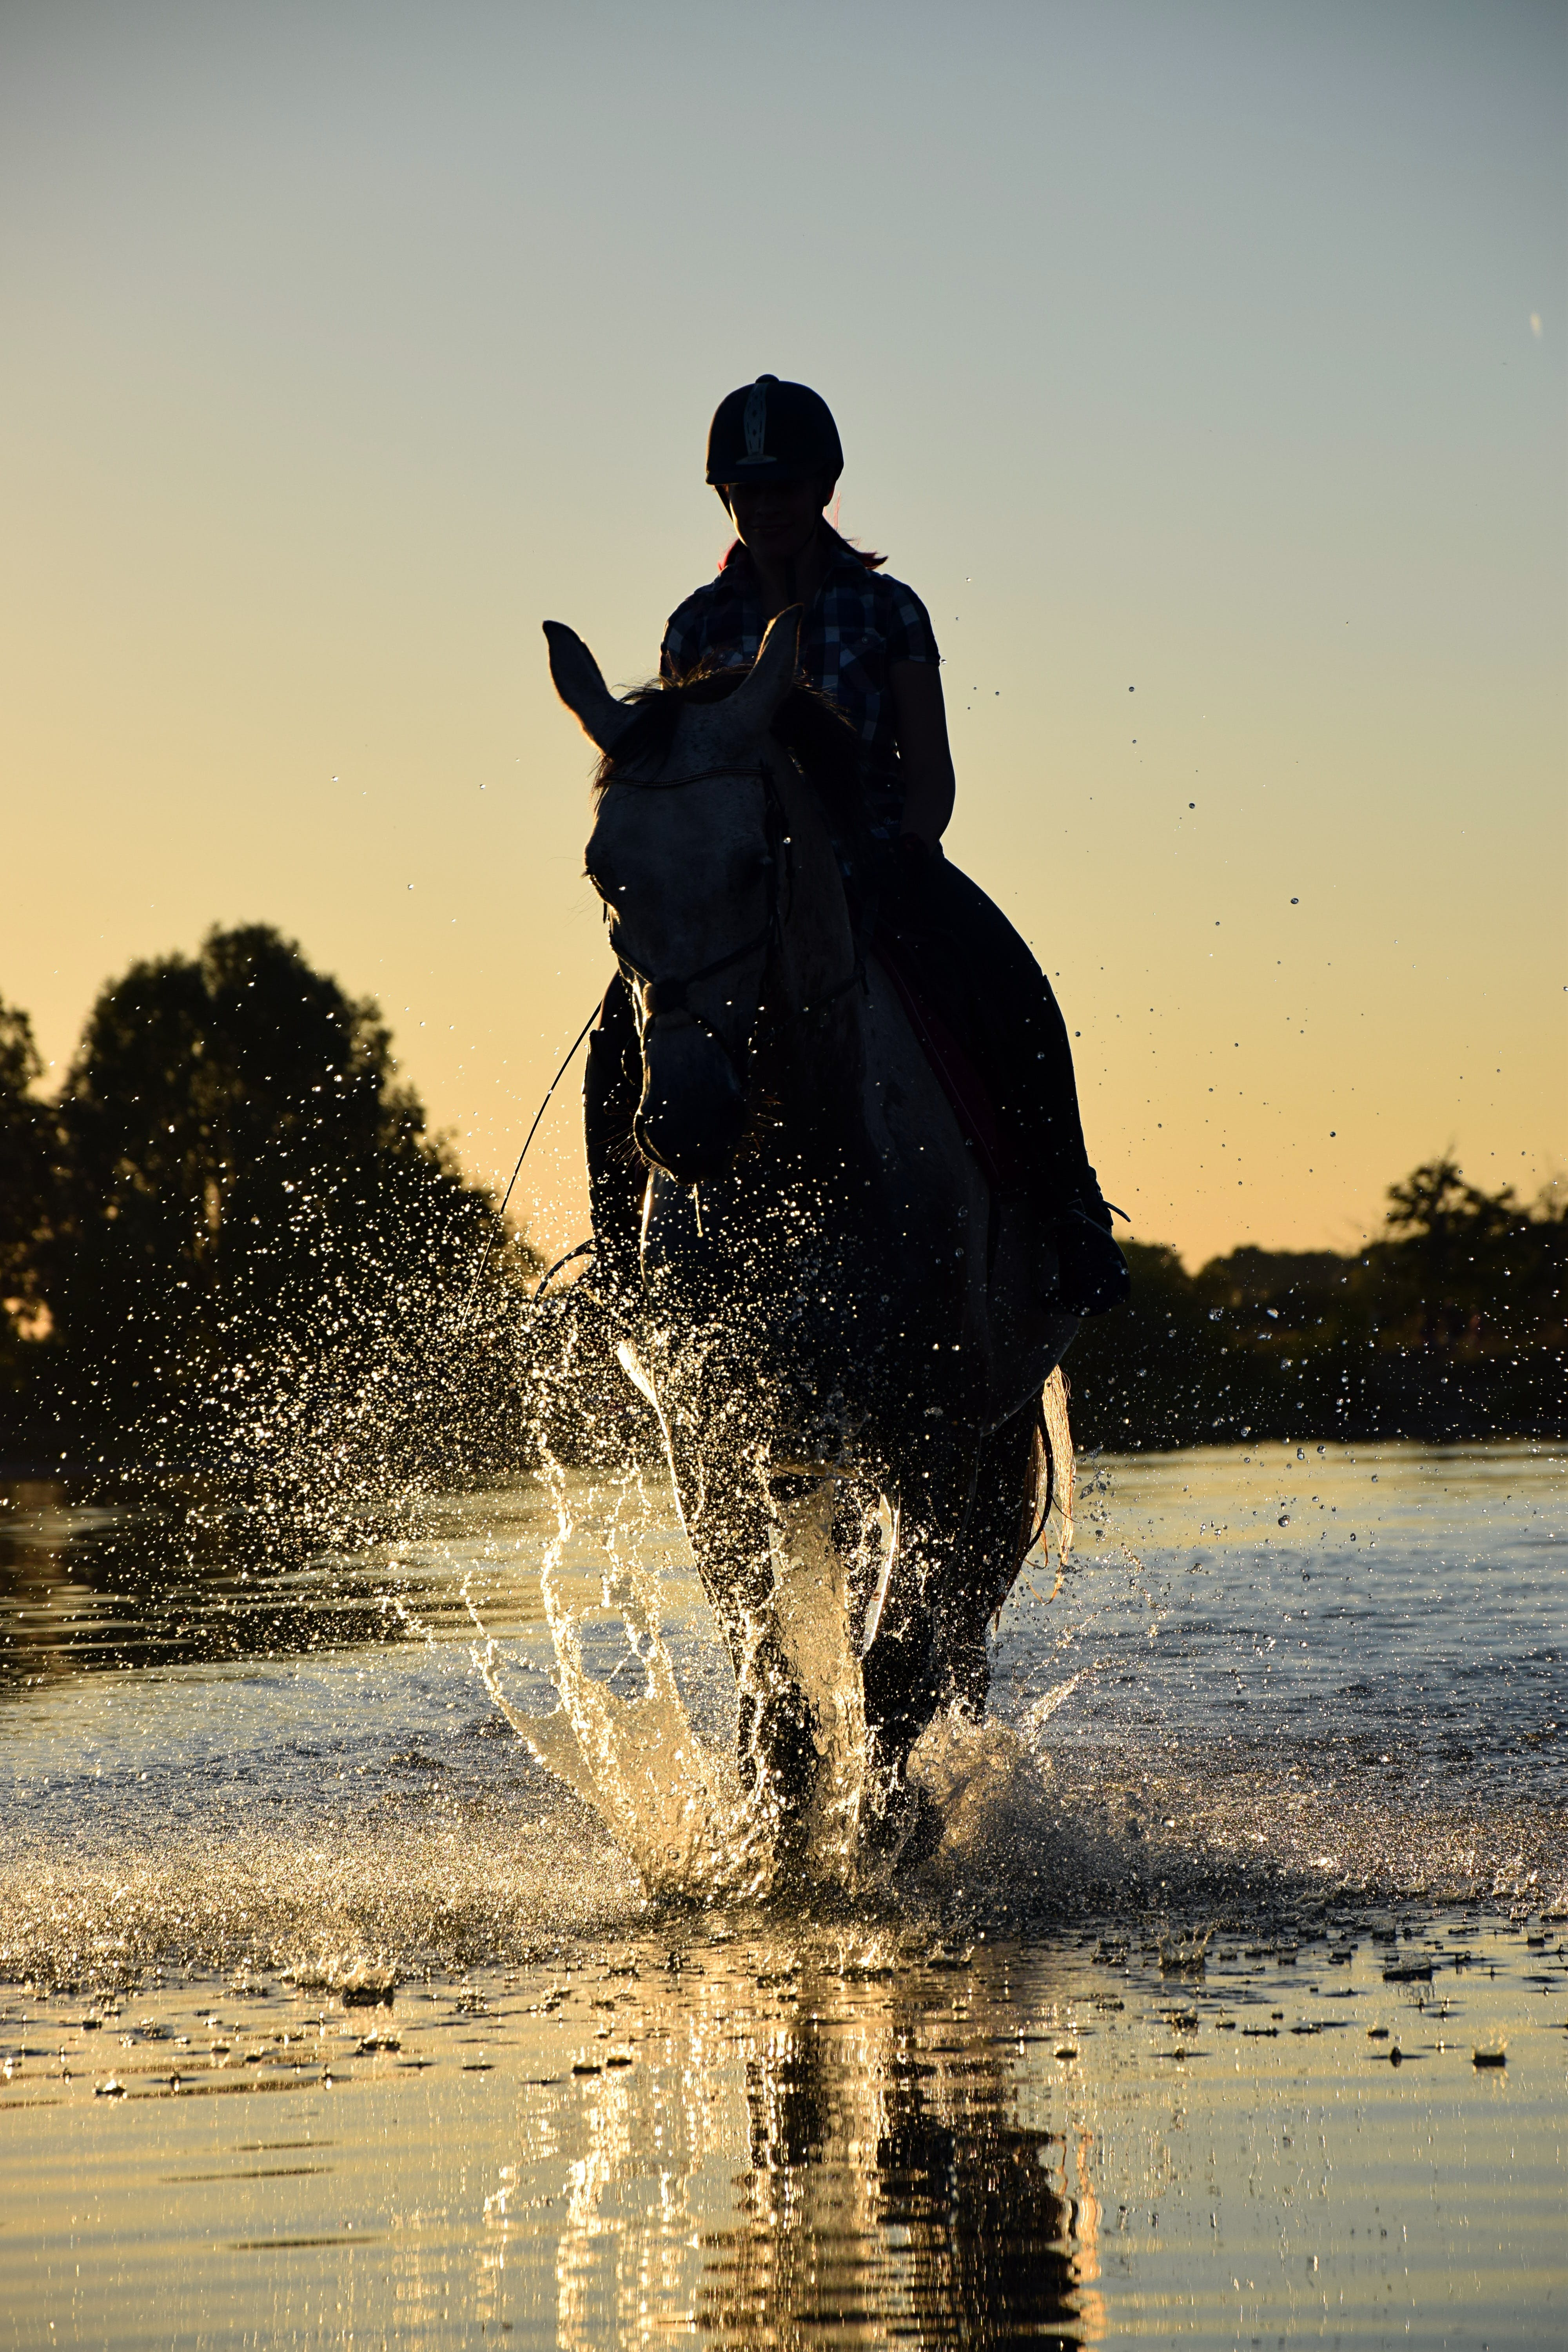 Person Riding Horse Walking on Body of Water during Golden Hour